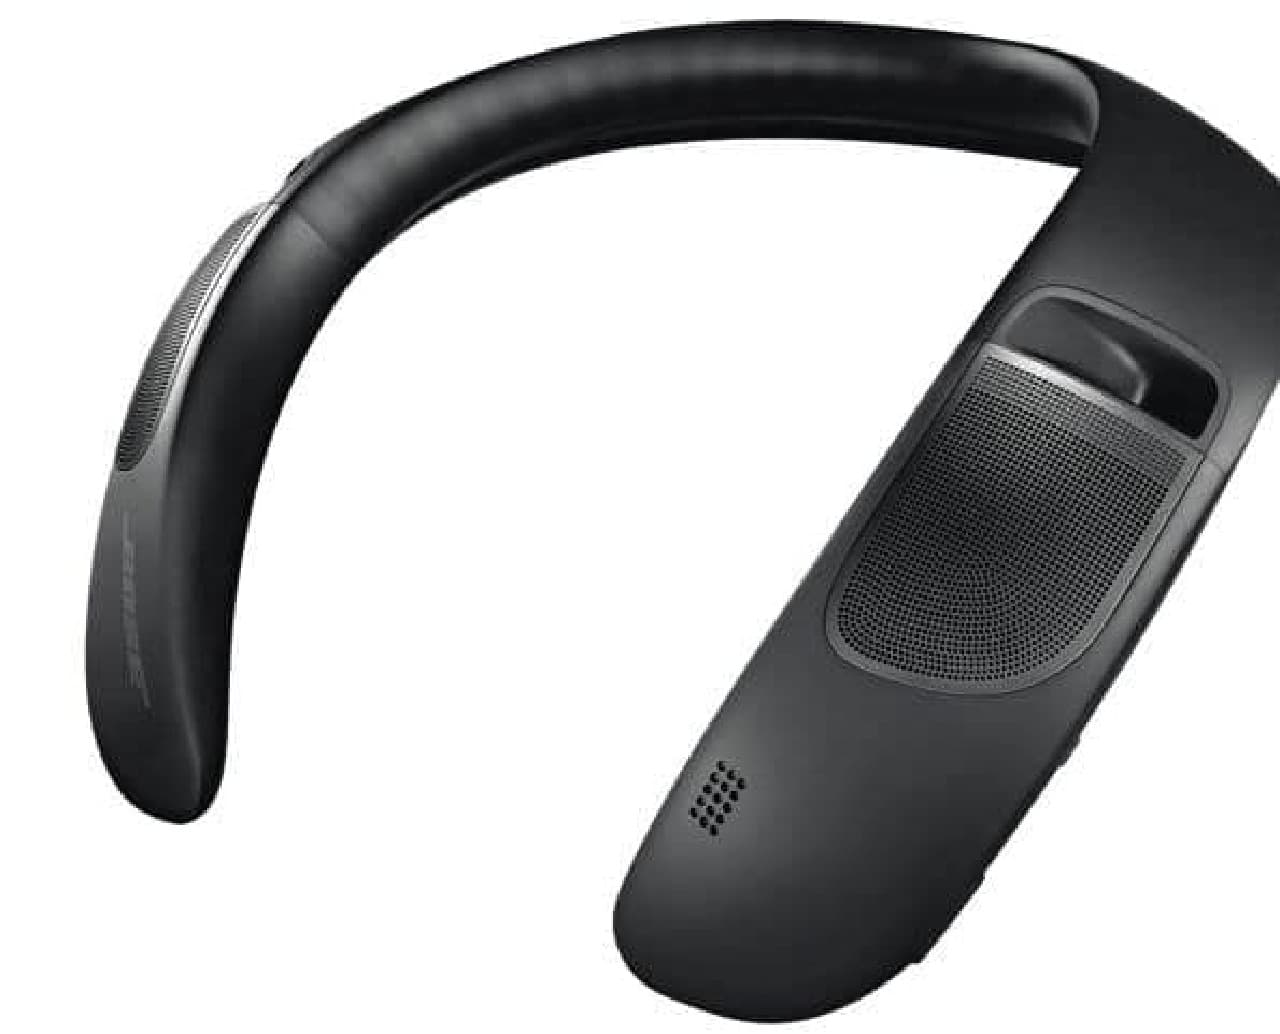 Bose首掛けスピーカー「Bose SoundWear Companion」